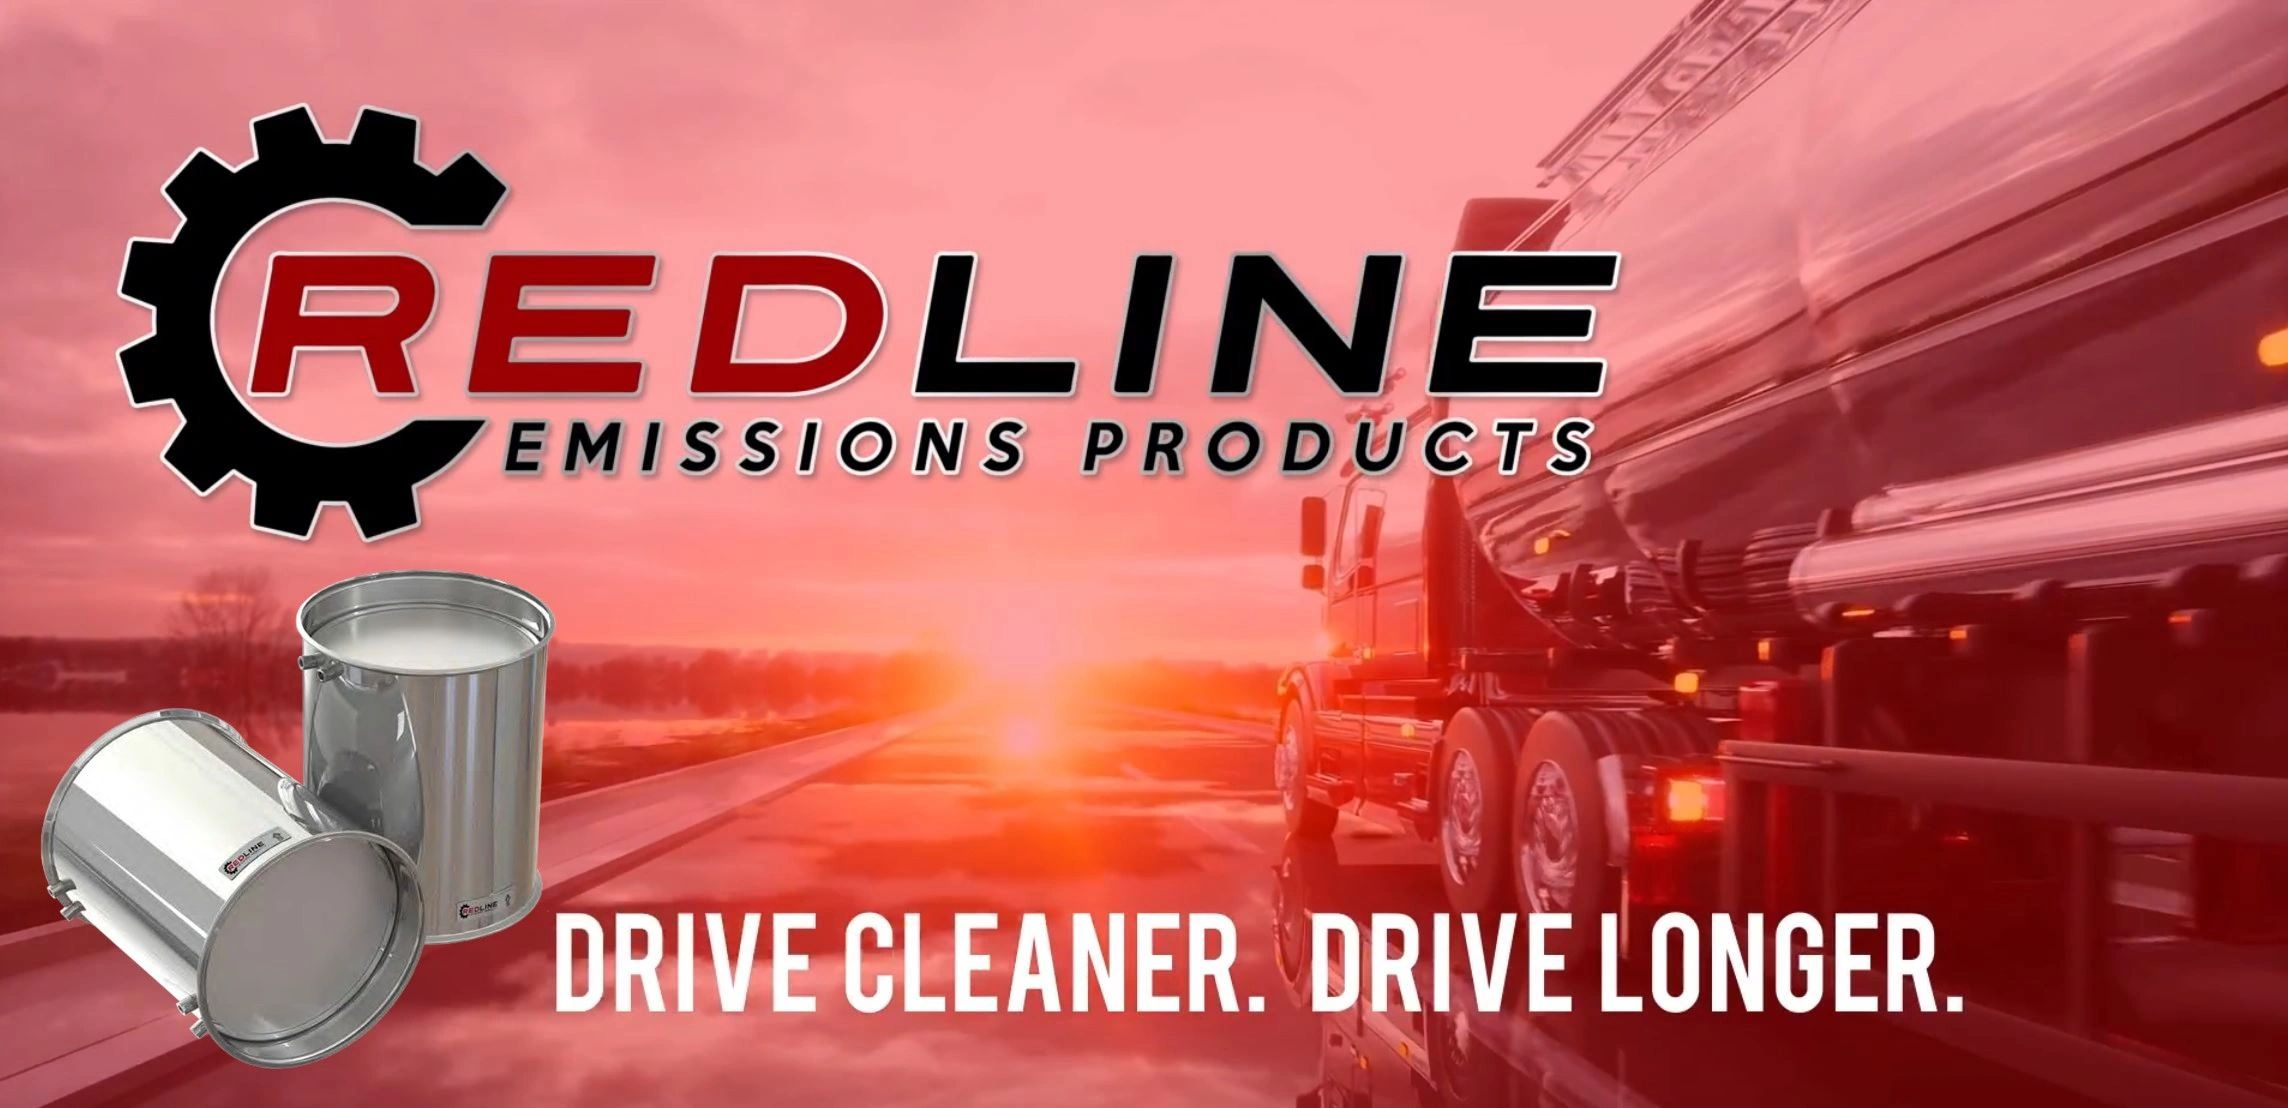 Redline Emissions Products - Diesel Particulate Filters - DPF - DOC